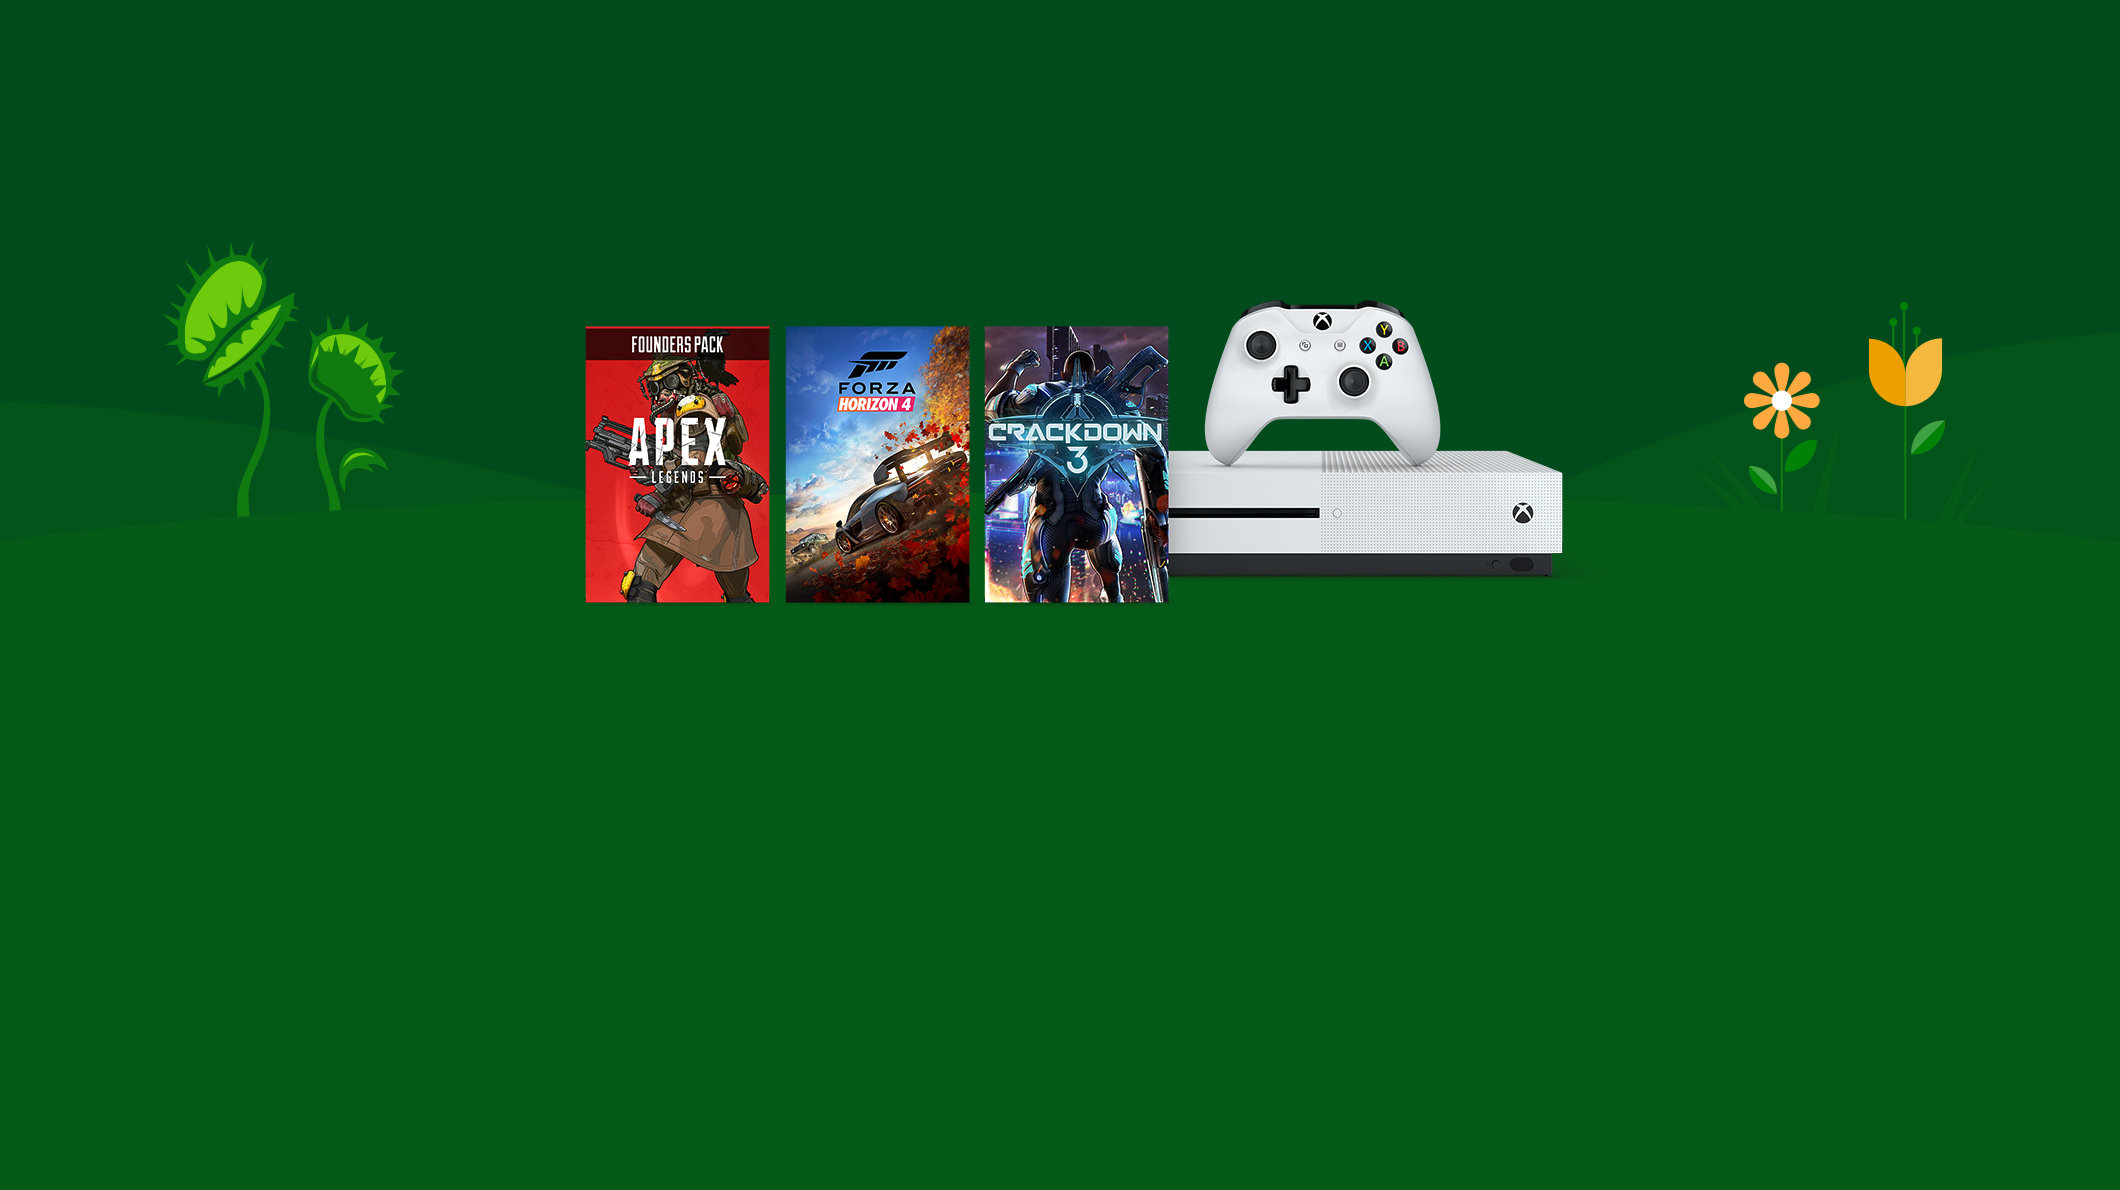 Xbox One S console, Apex Legends Founders Pack, Forza Horizon 4, Crackdown 3